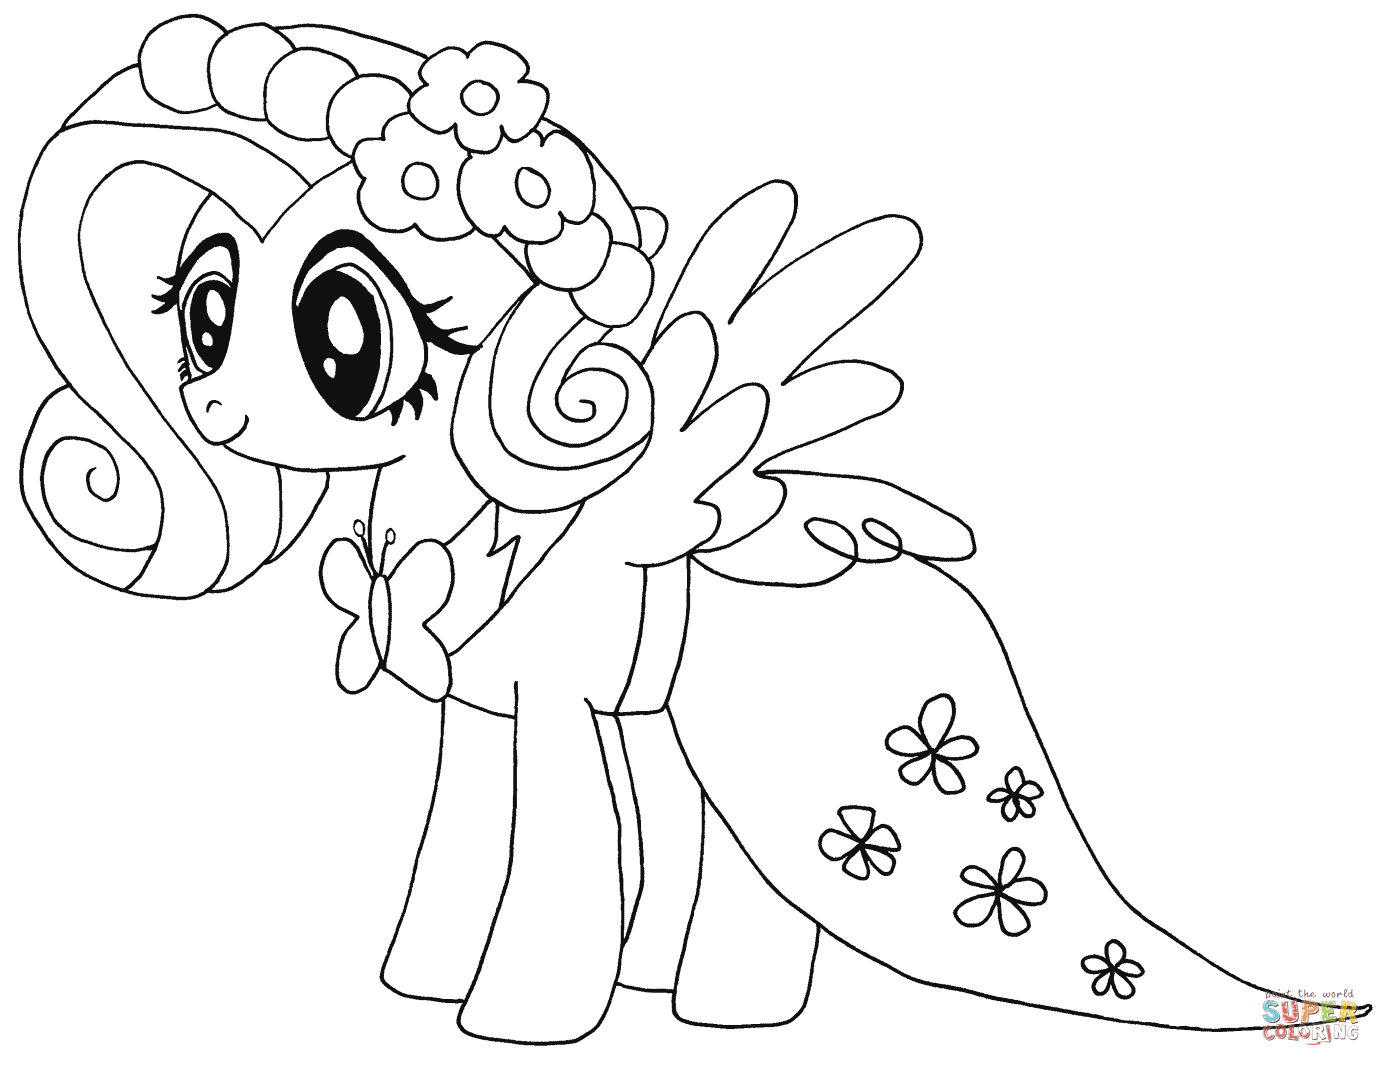 My Little Pony Fluttershy from My Little Pony Coloring Page